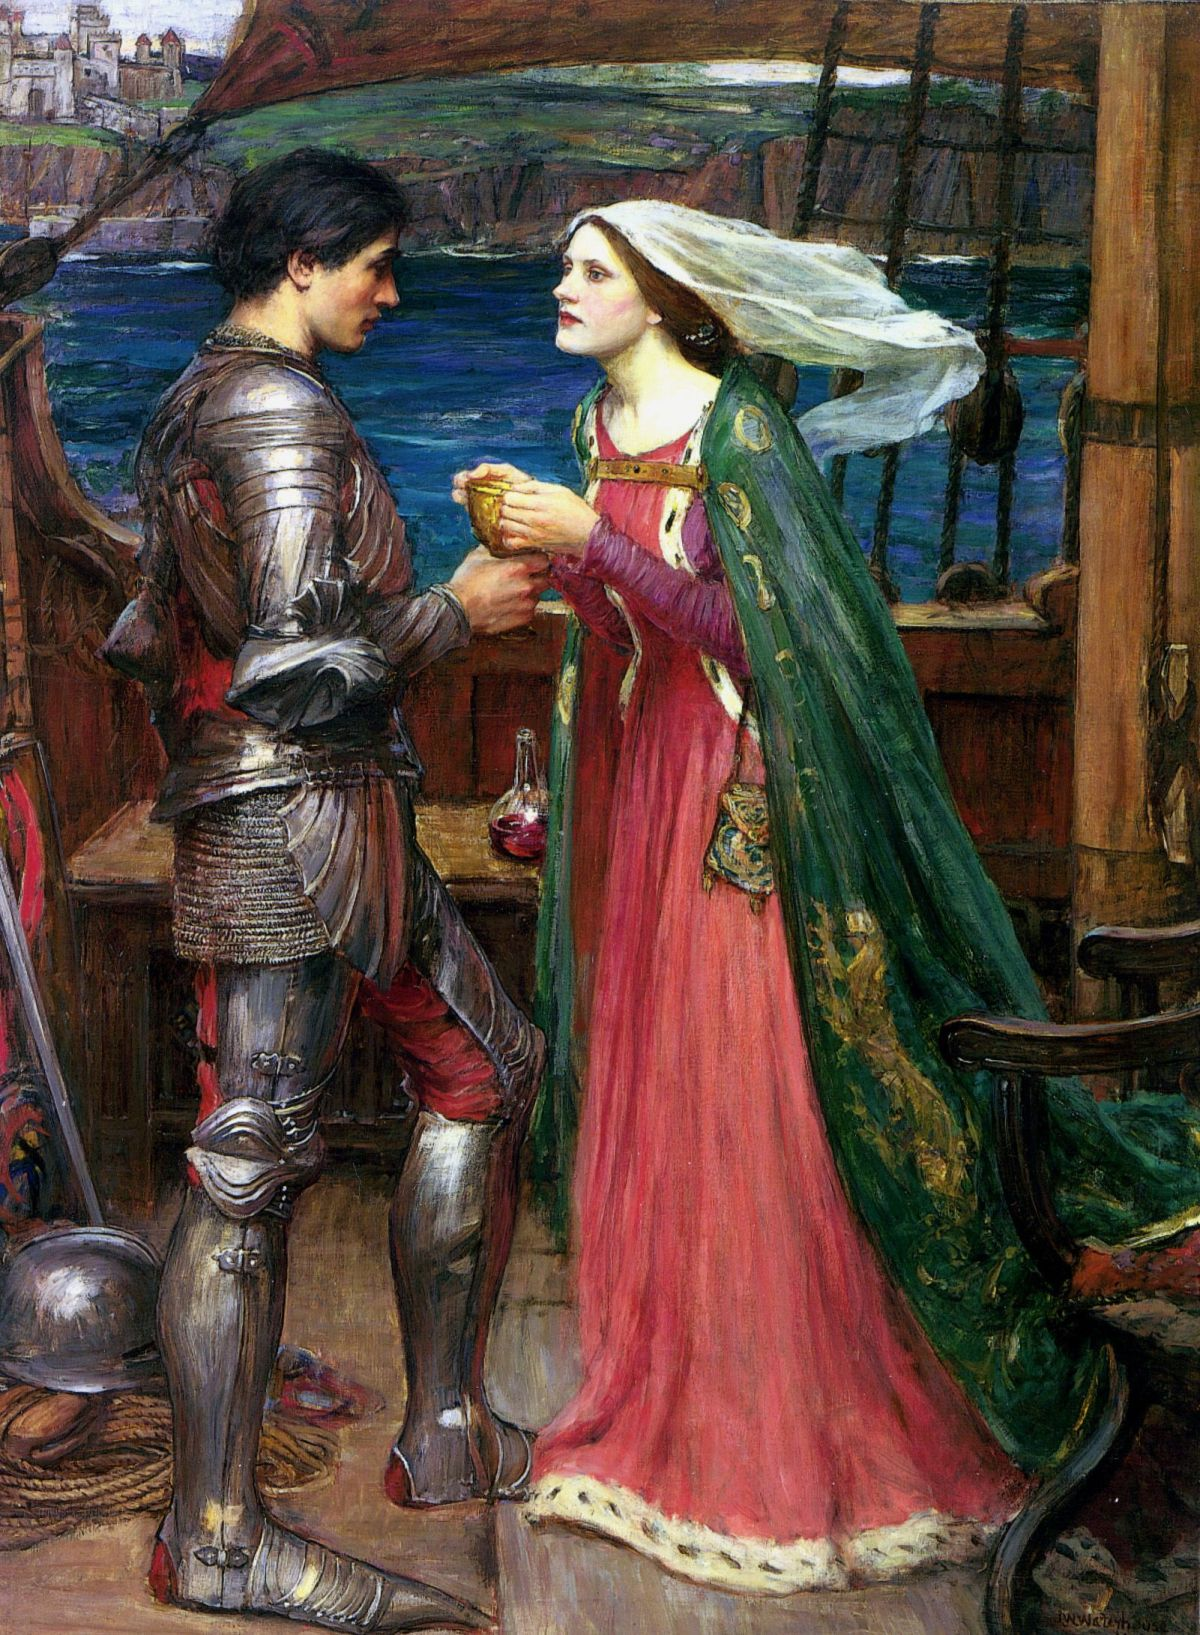 Tristan and Isolde with the Potion by John William Waterhouse